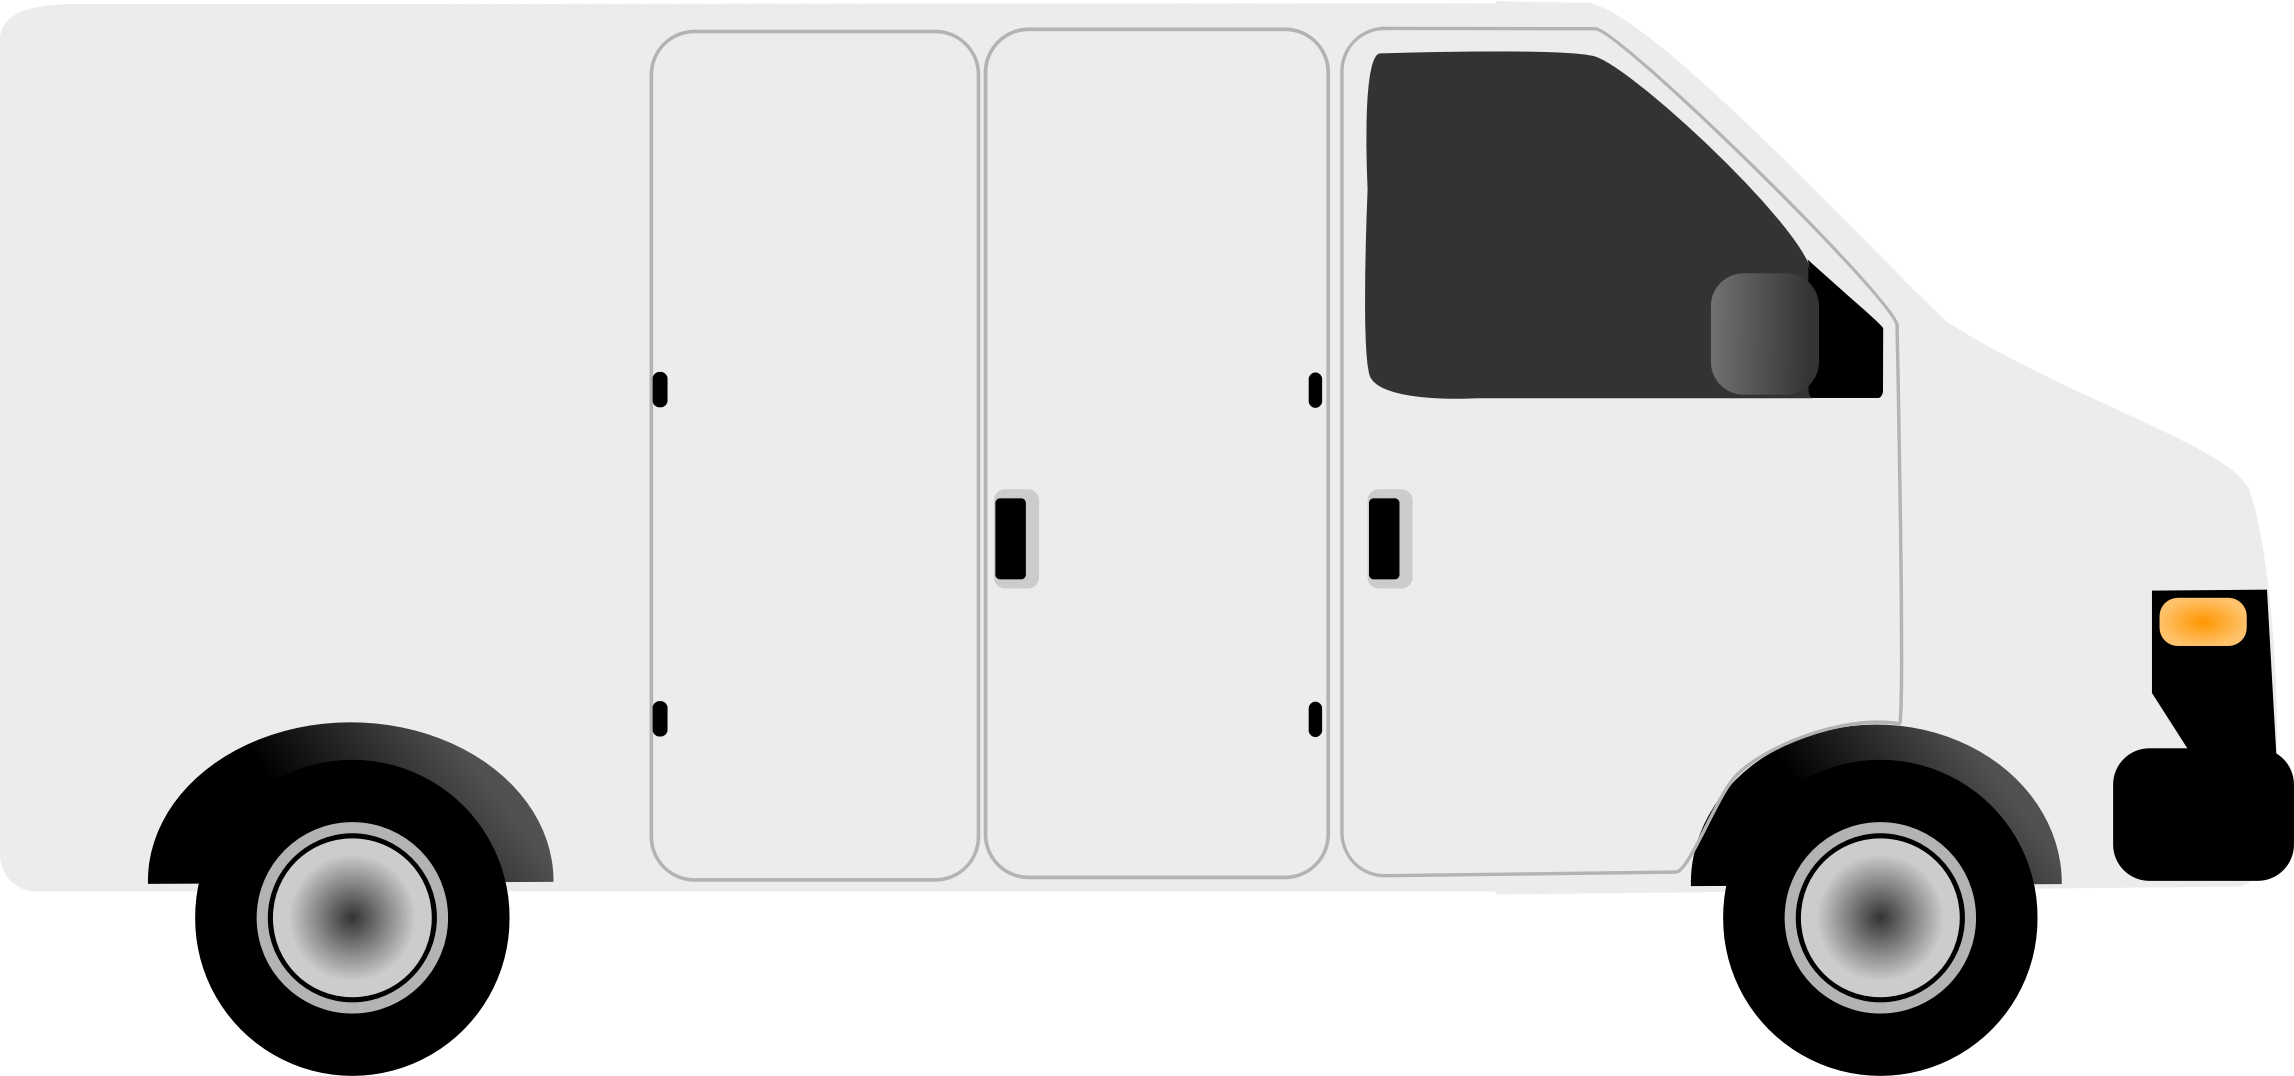 delivery truck clipart images - photo #36